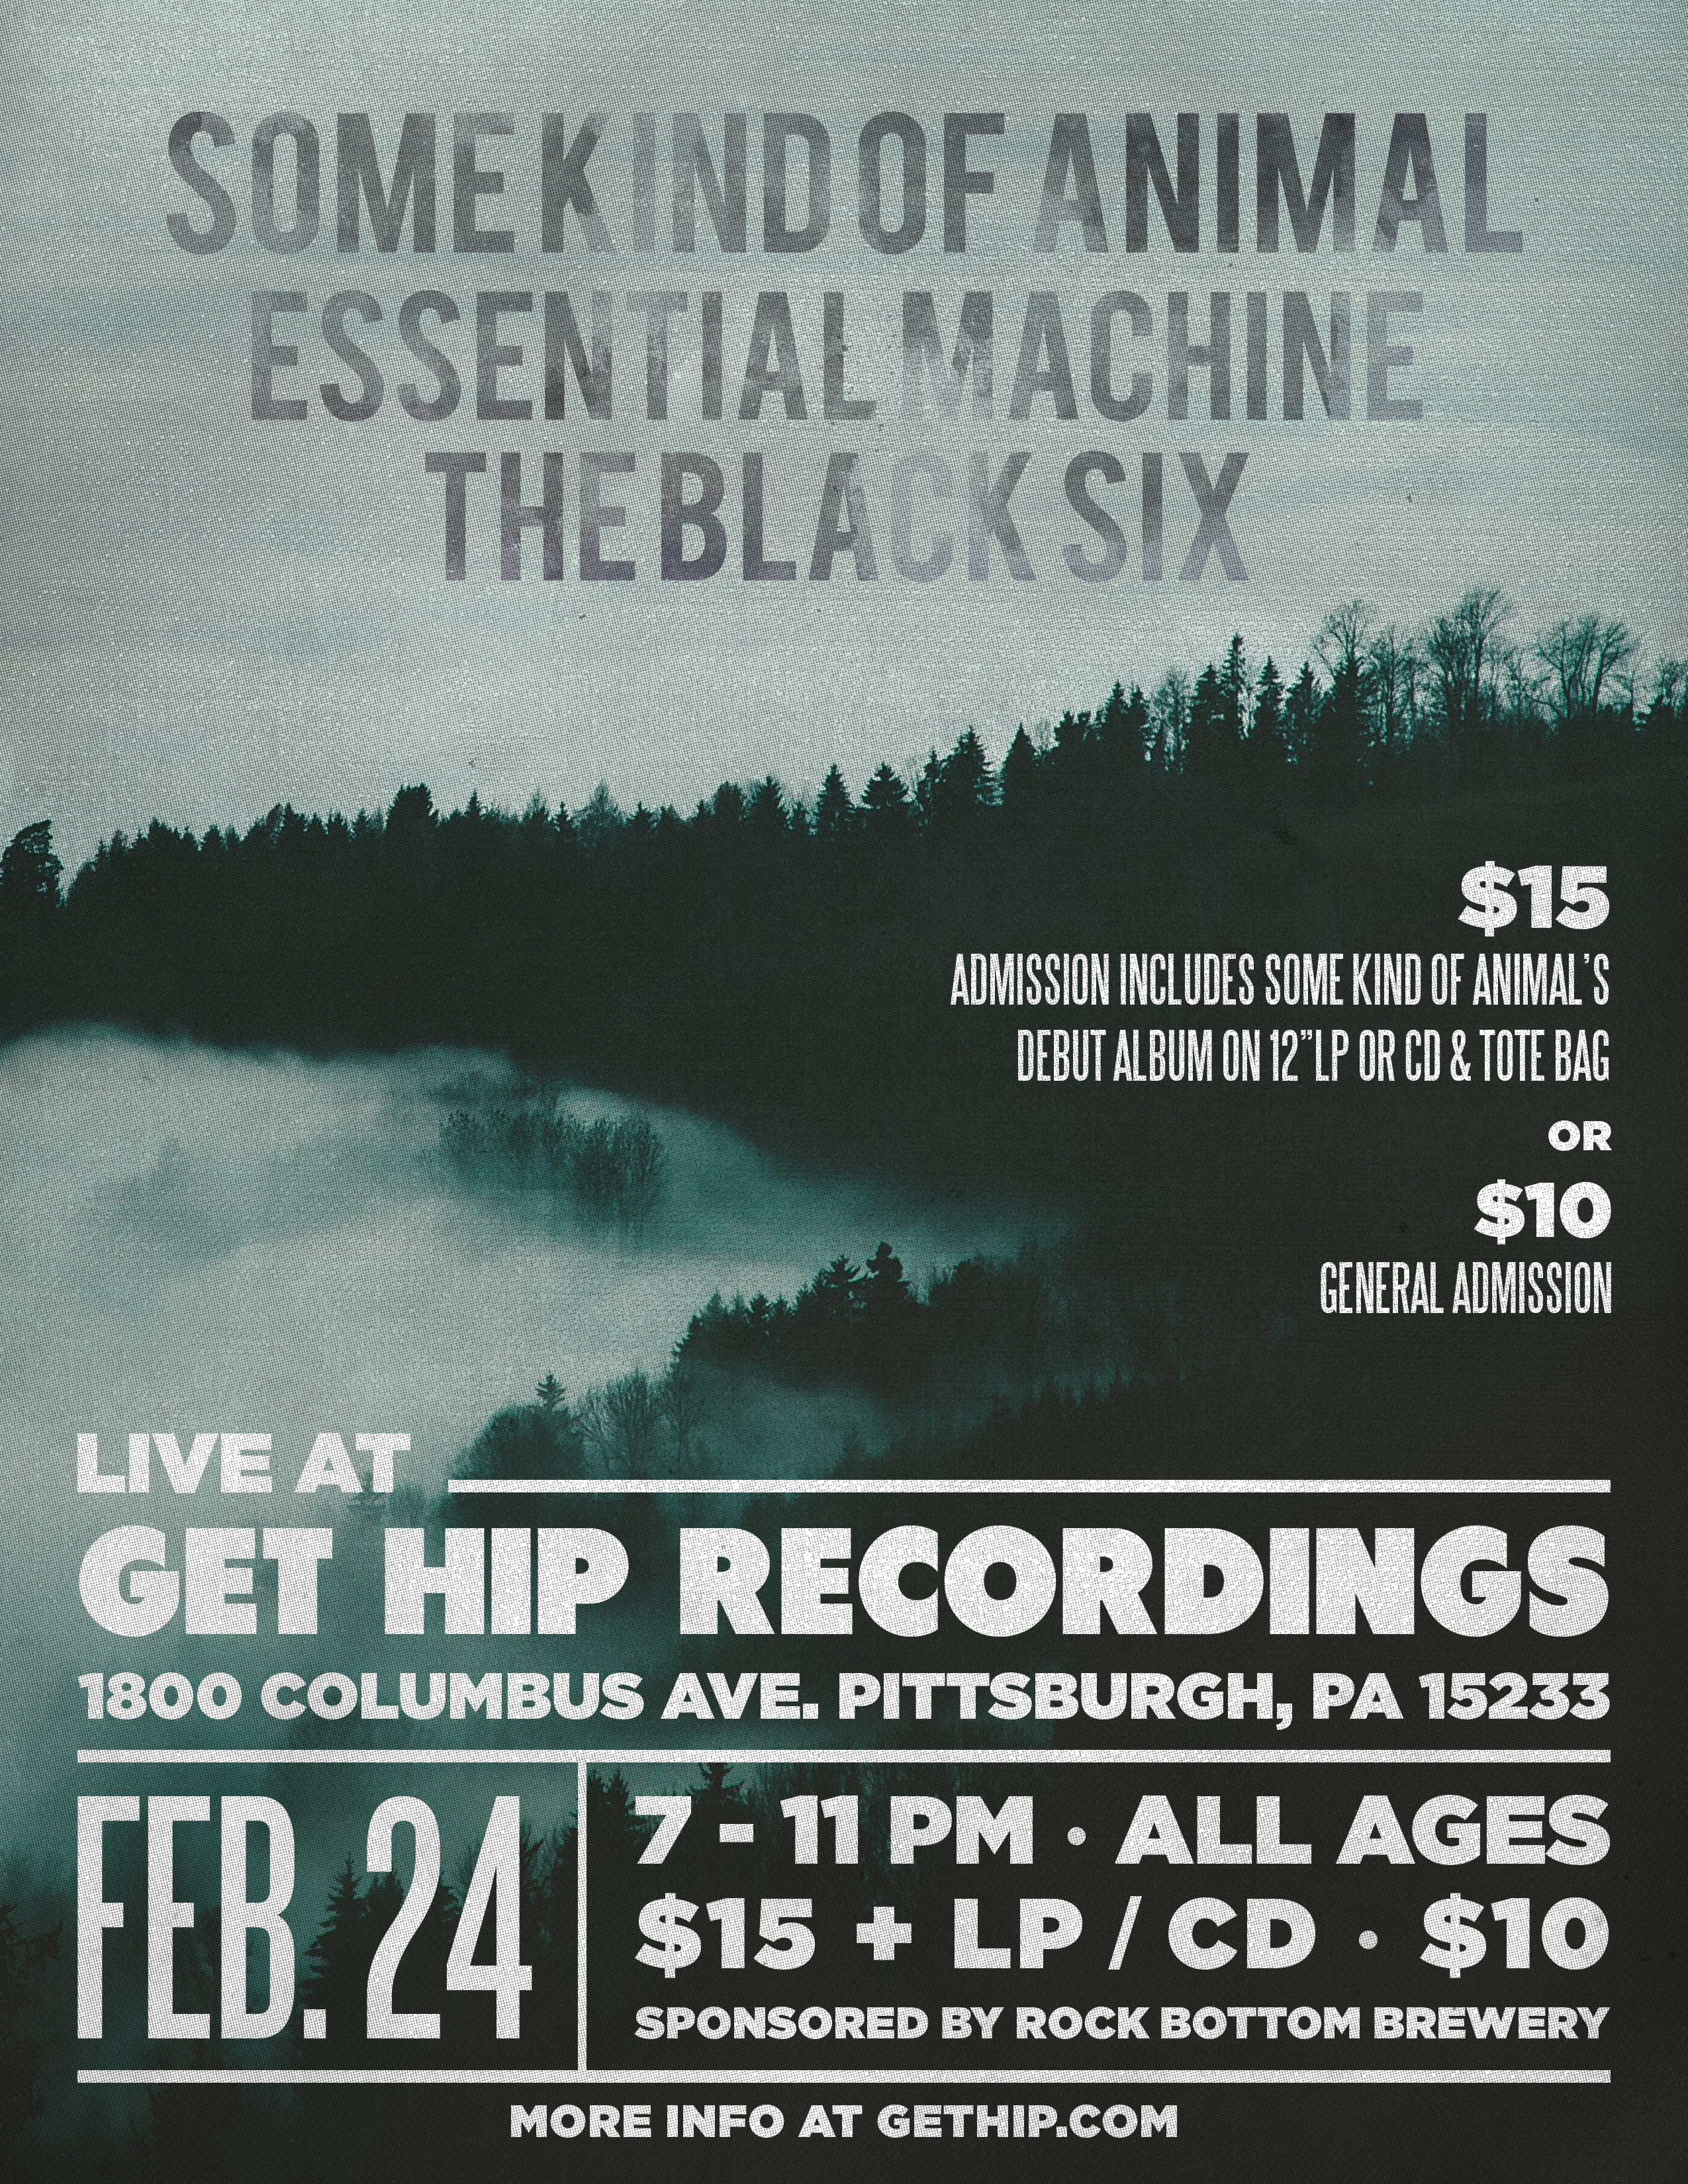 live at get hip recordings some kind of animal feb 24 get hip